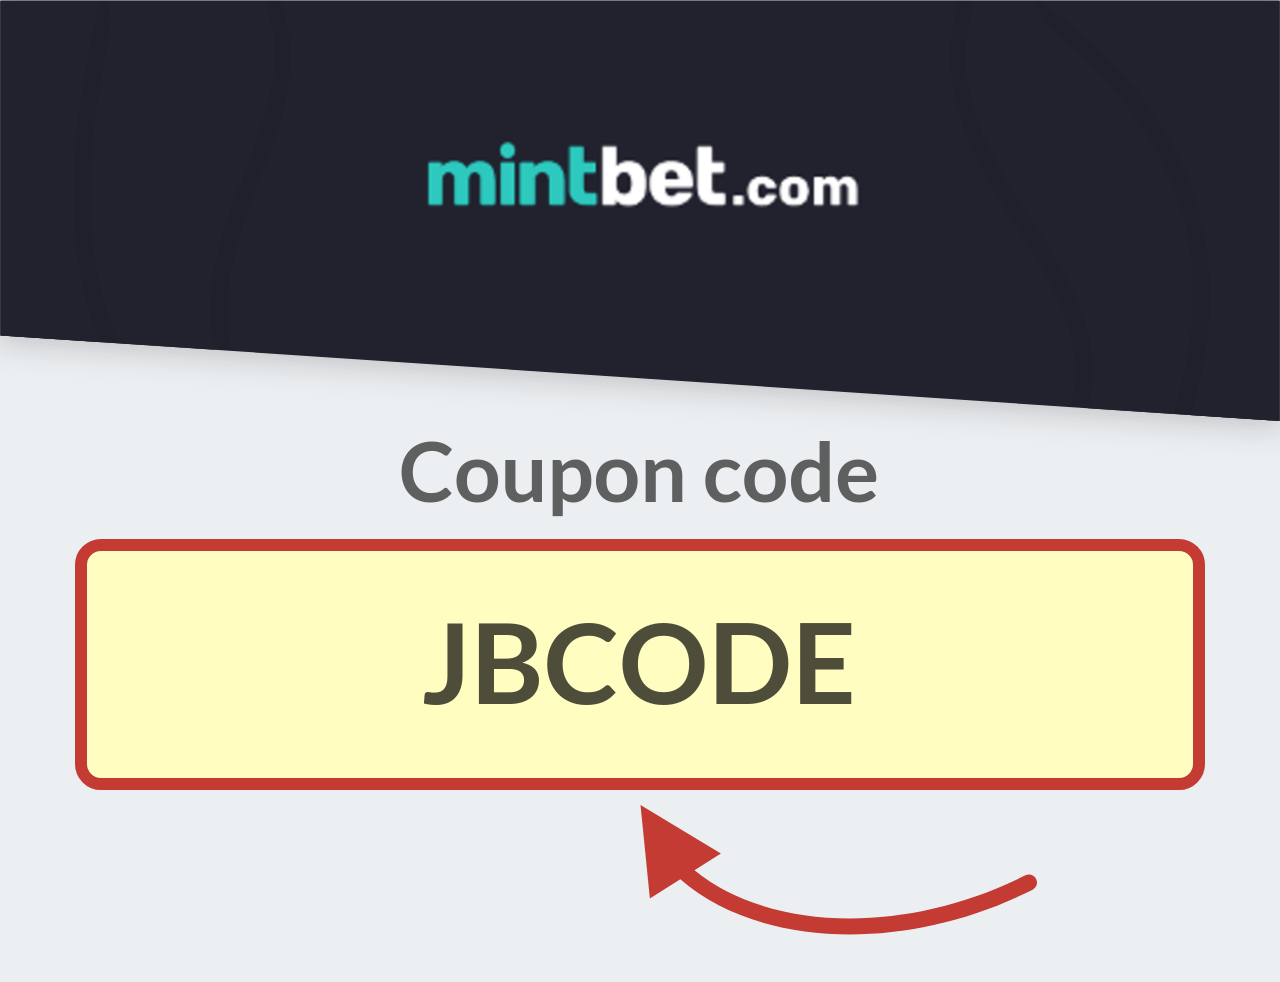 MintBet Coupon Code